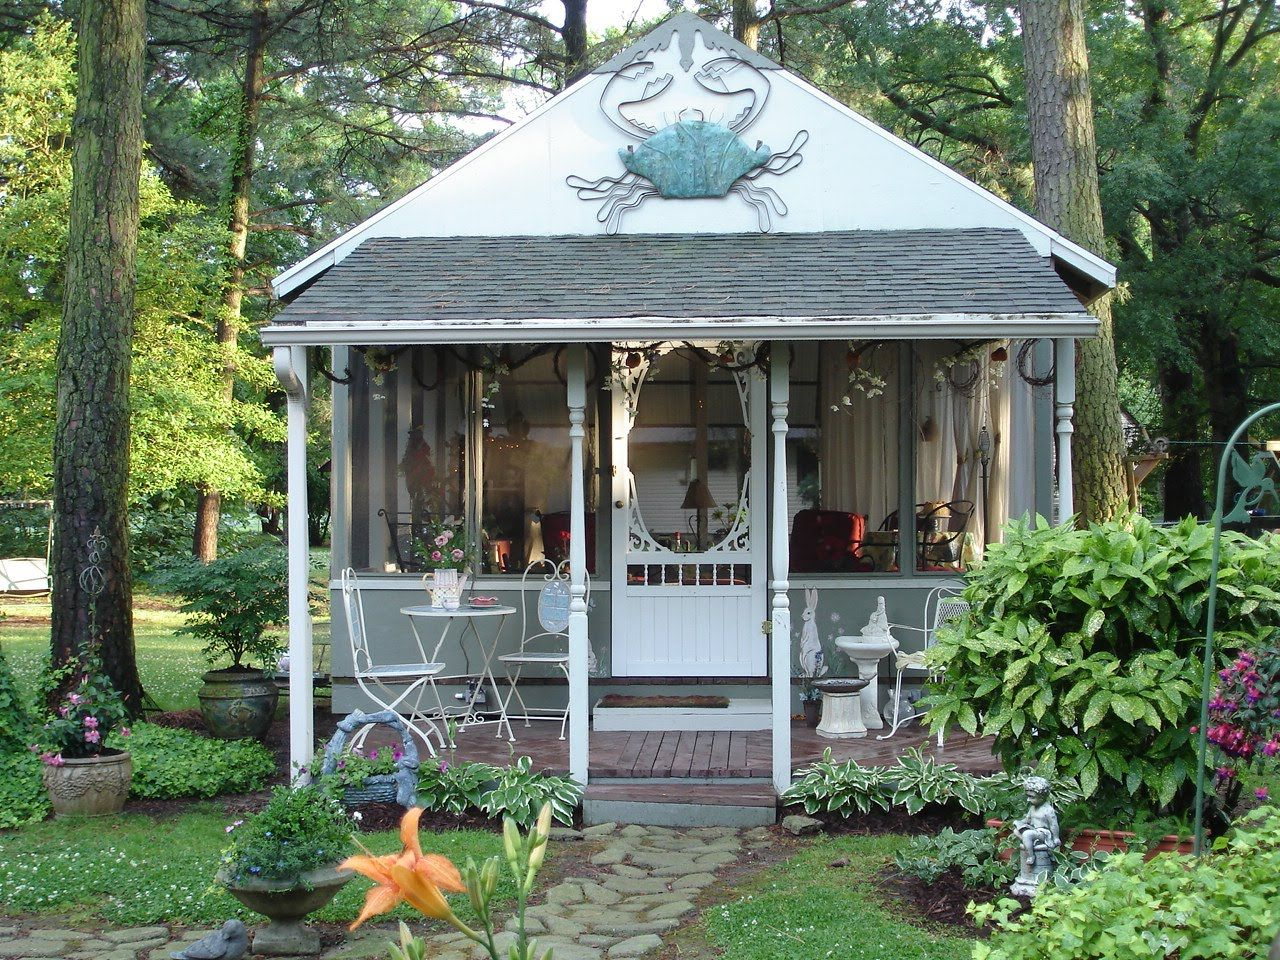 My dream shed | Backyard paradise, Home and garden, Backyard on My Dream Patio id=45722